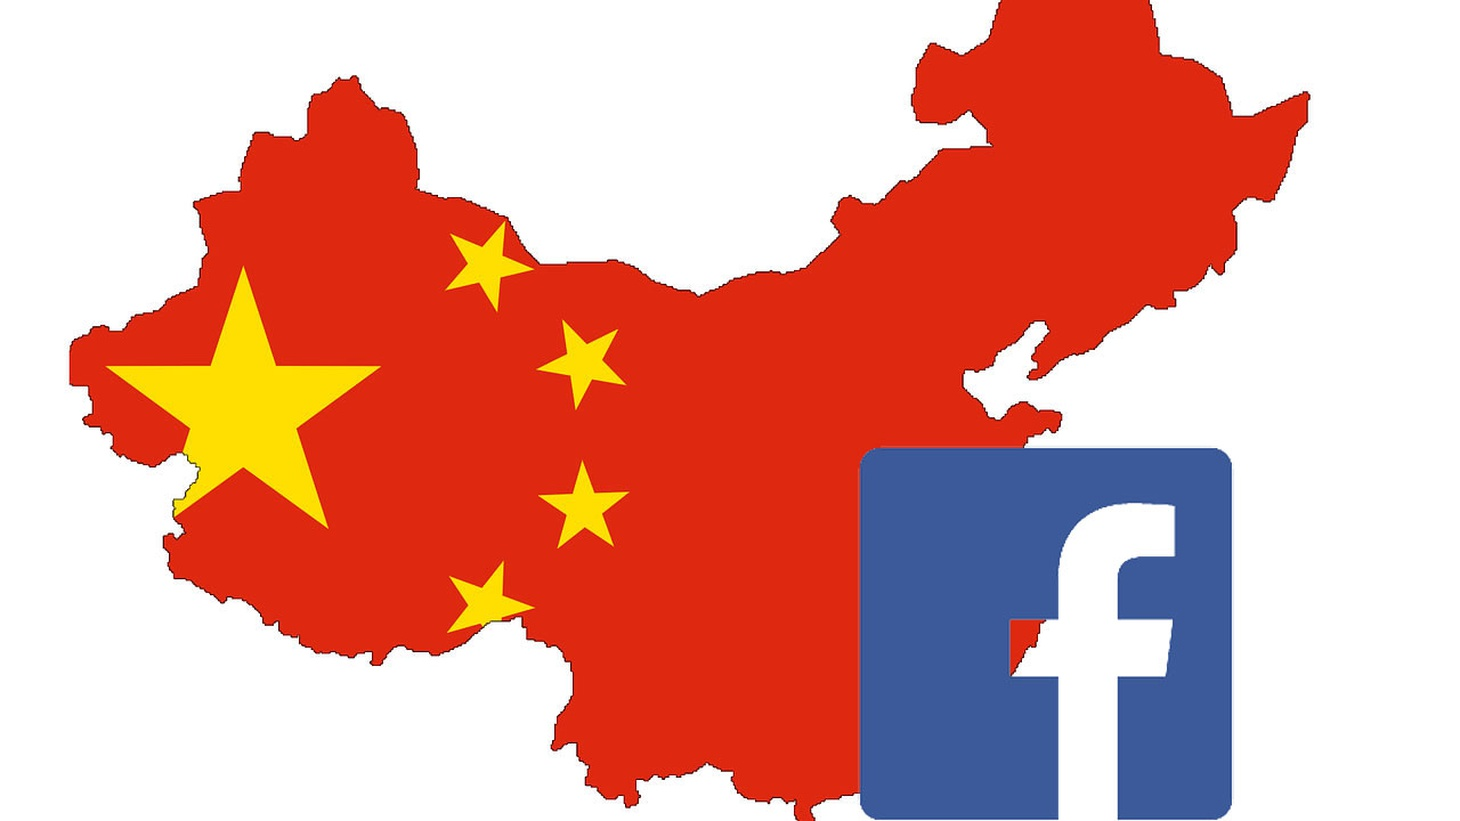 Facebook CEO Mark Zuckerberg is a very public fanboy of China. His wife is Chinese American, he's traveled to the country many times, made friends with high placed Chinese leaders, and even learned Mandarin.